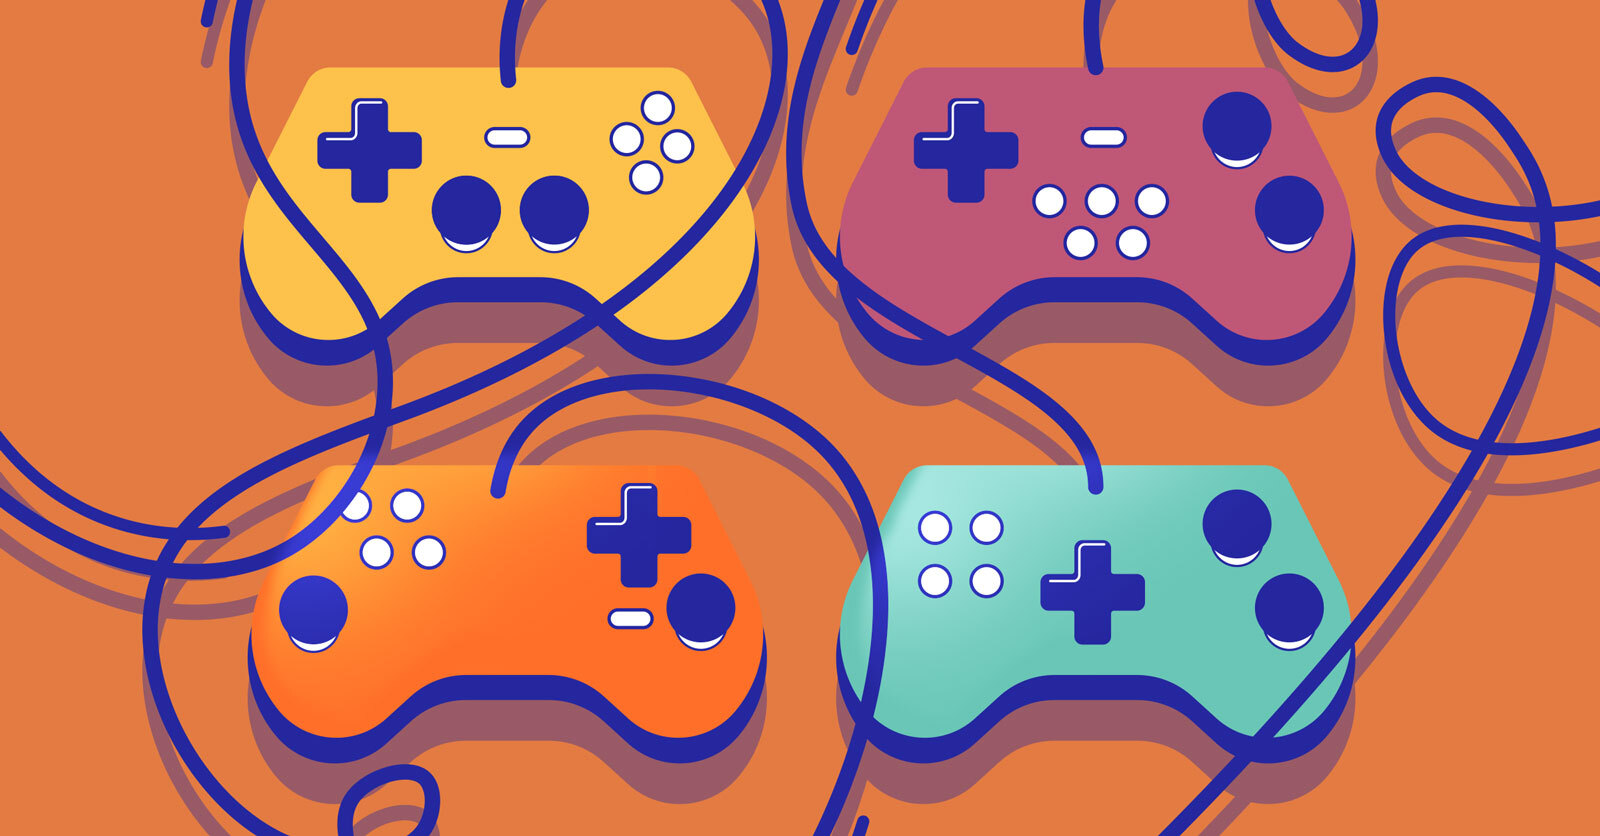 four gamepads in different colors against a bright background